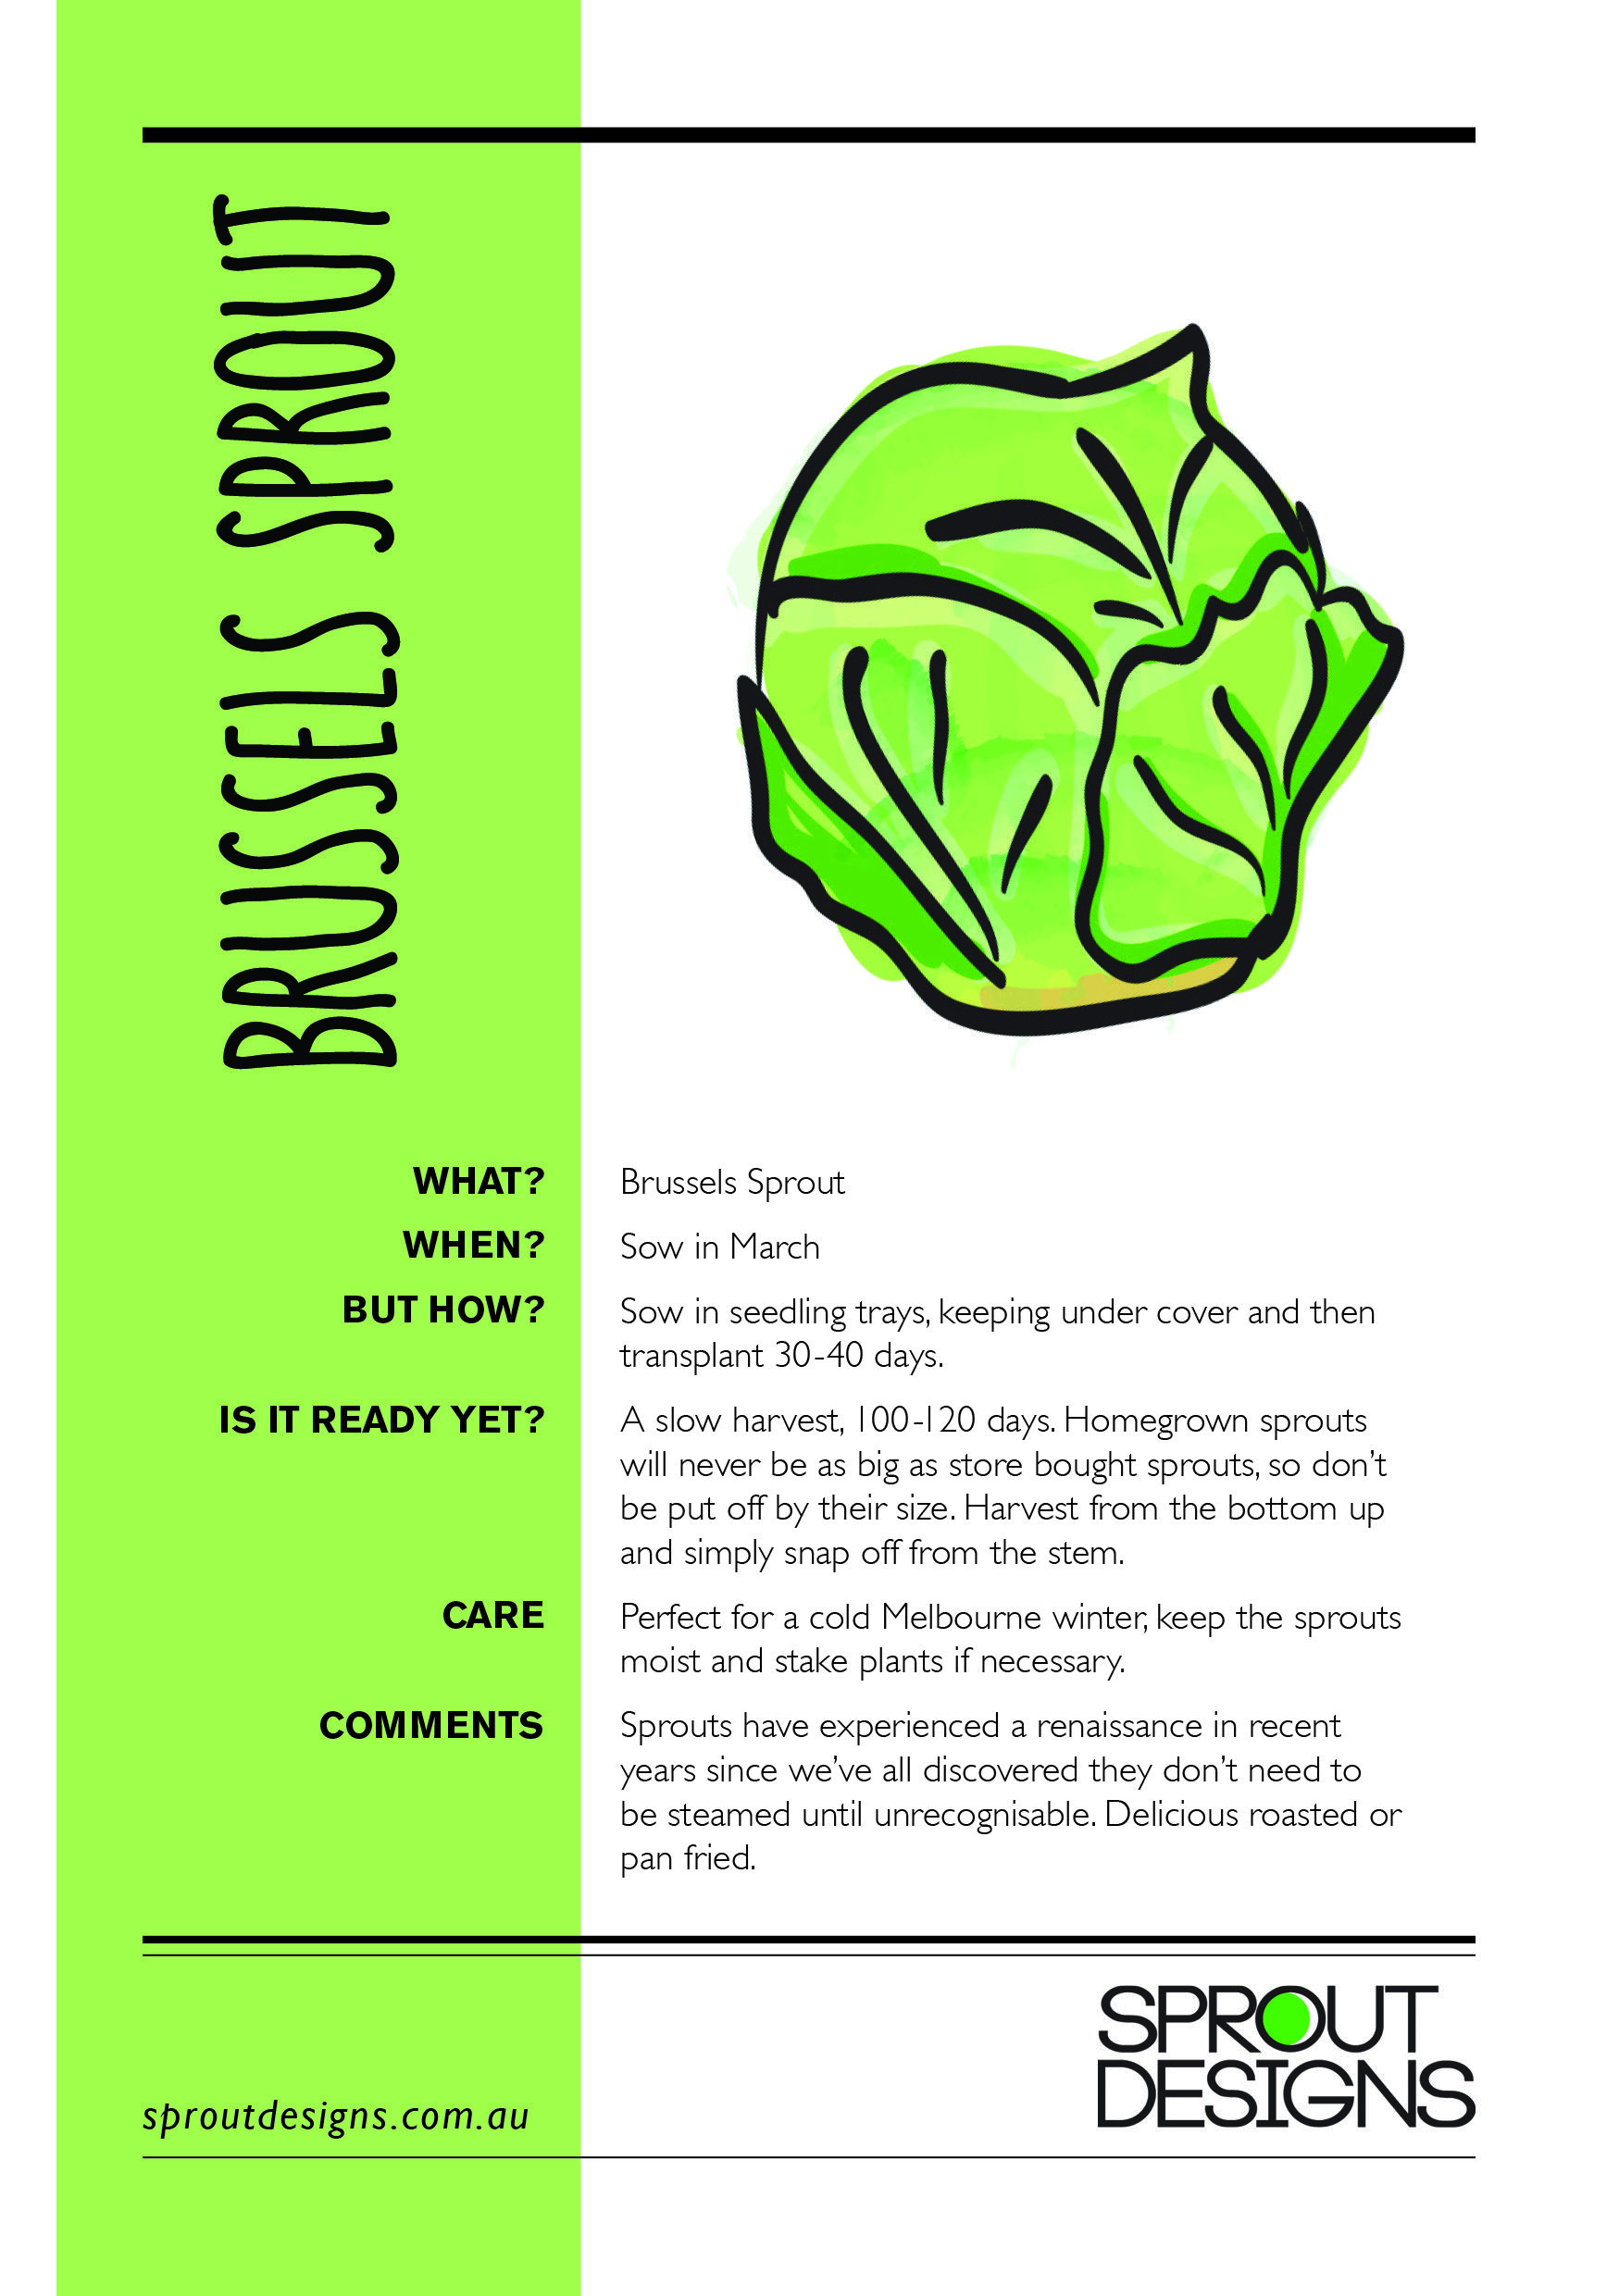 how to grow brussels sprouts growing brussel sprouts